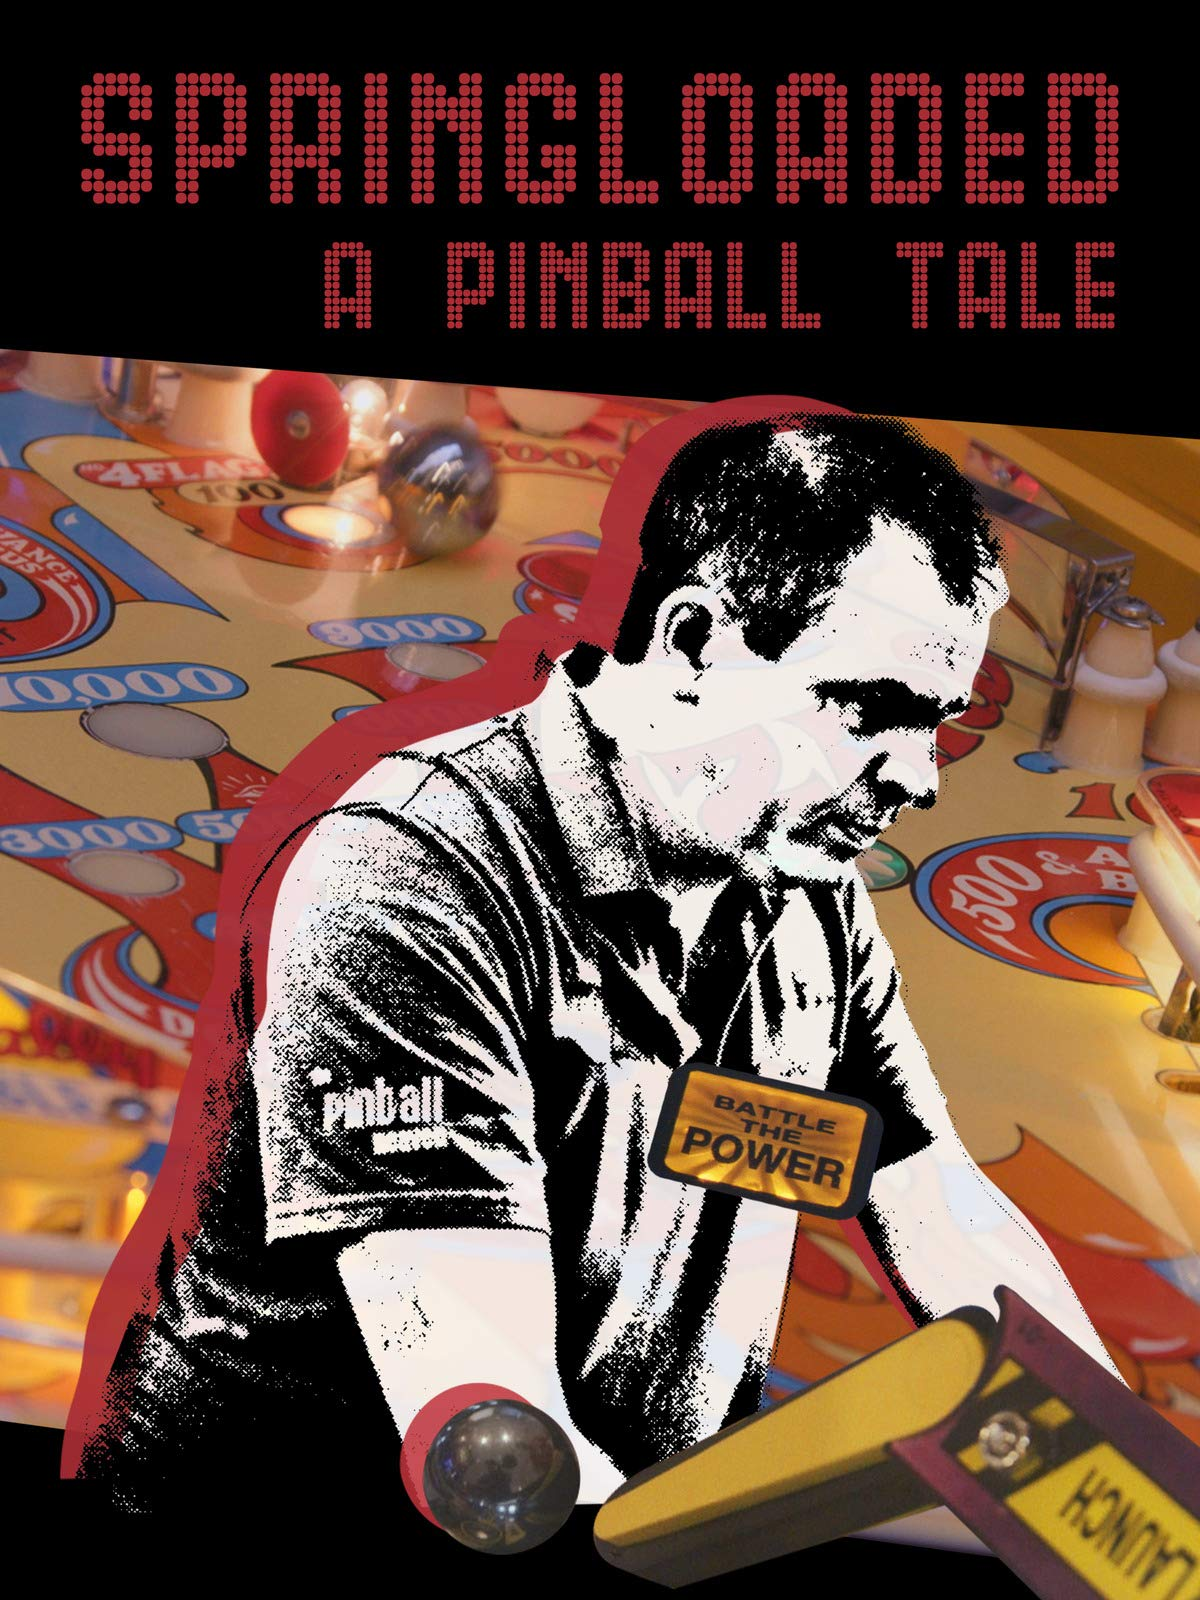 Springloaded: A Pinball Tale on Amazon Prime Instant Video UK